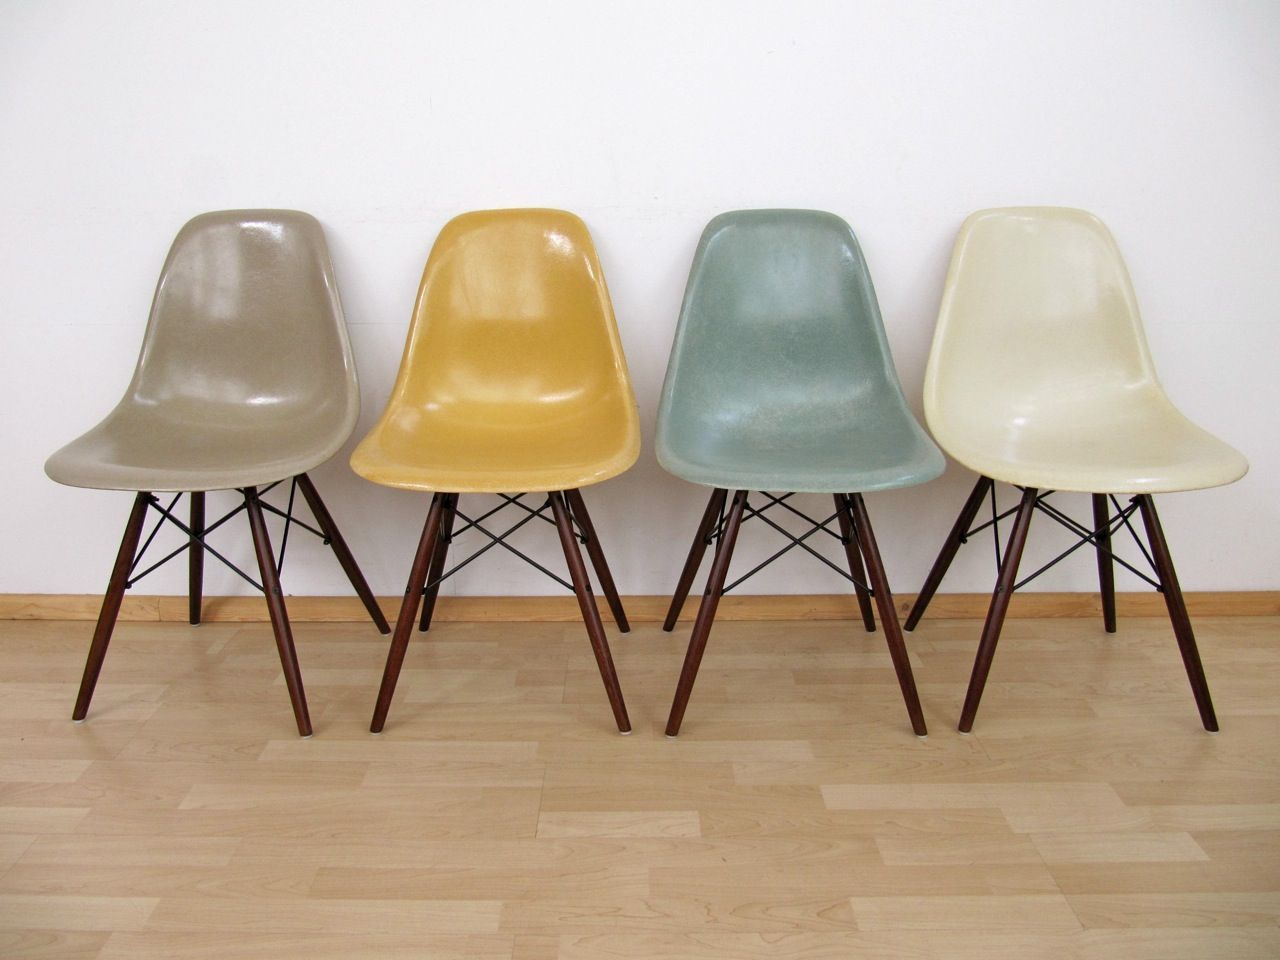 Eames Chairs Vitra Taupe Yellow Blue Cream Love The Color Combination Eameschair Eames Dining Chair White Eames Chair Eames Chair